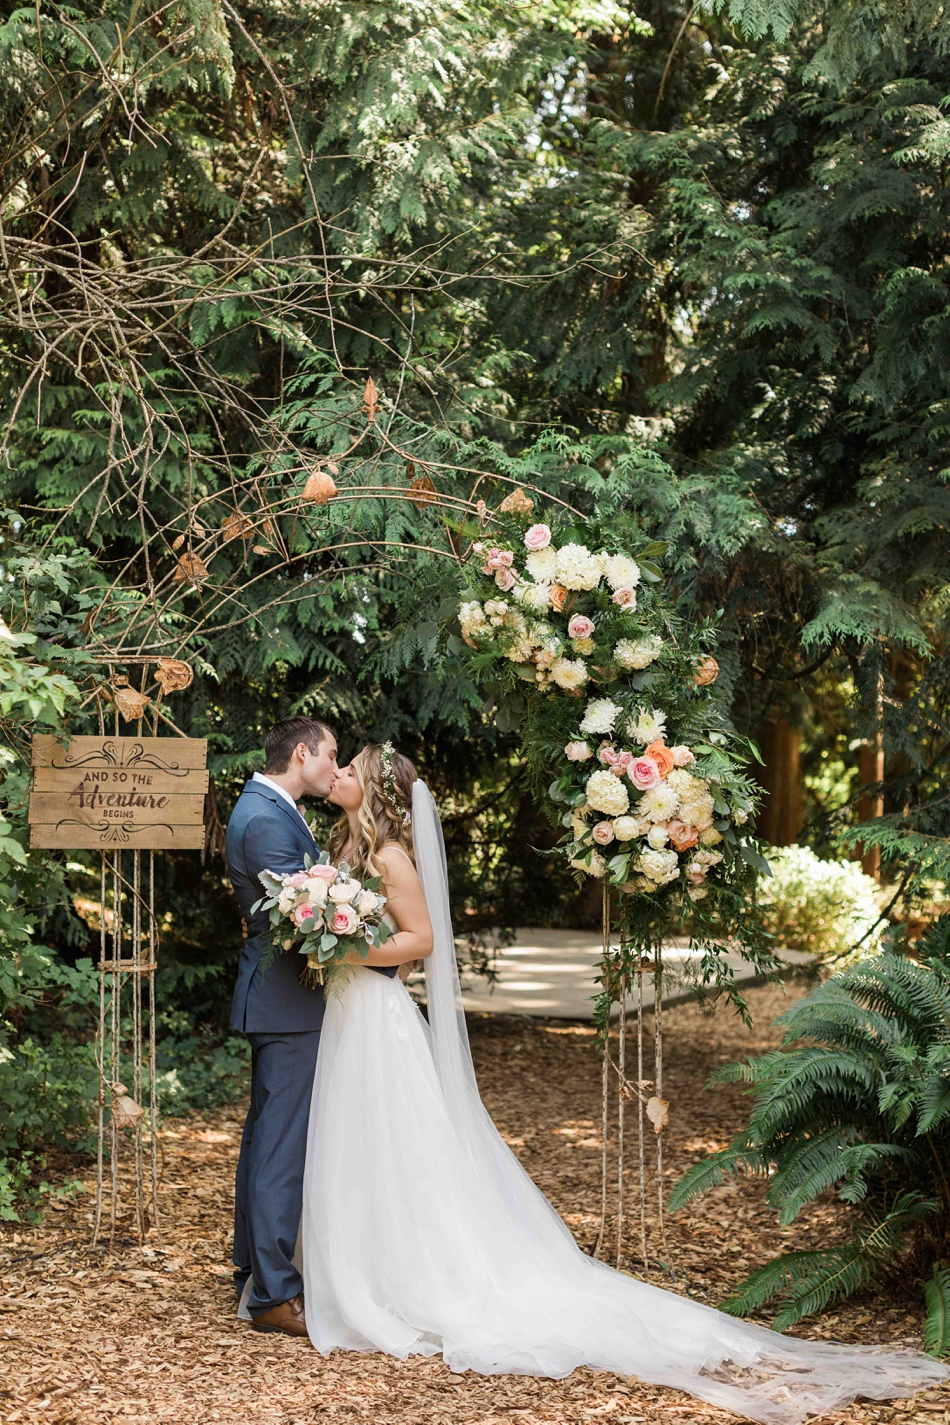 Kissing in the forest at Twin Willow Gardens in Snohomish. Photos by Joanna Monger Photography, Snohomish and Seattle Wedding Photographer.